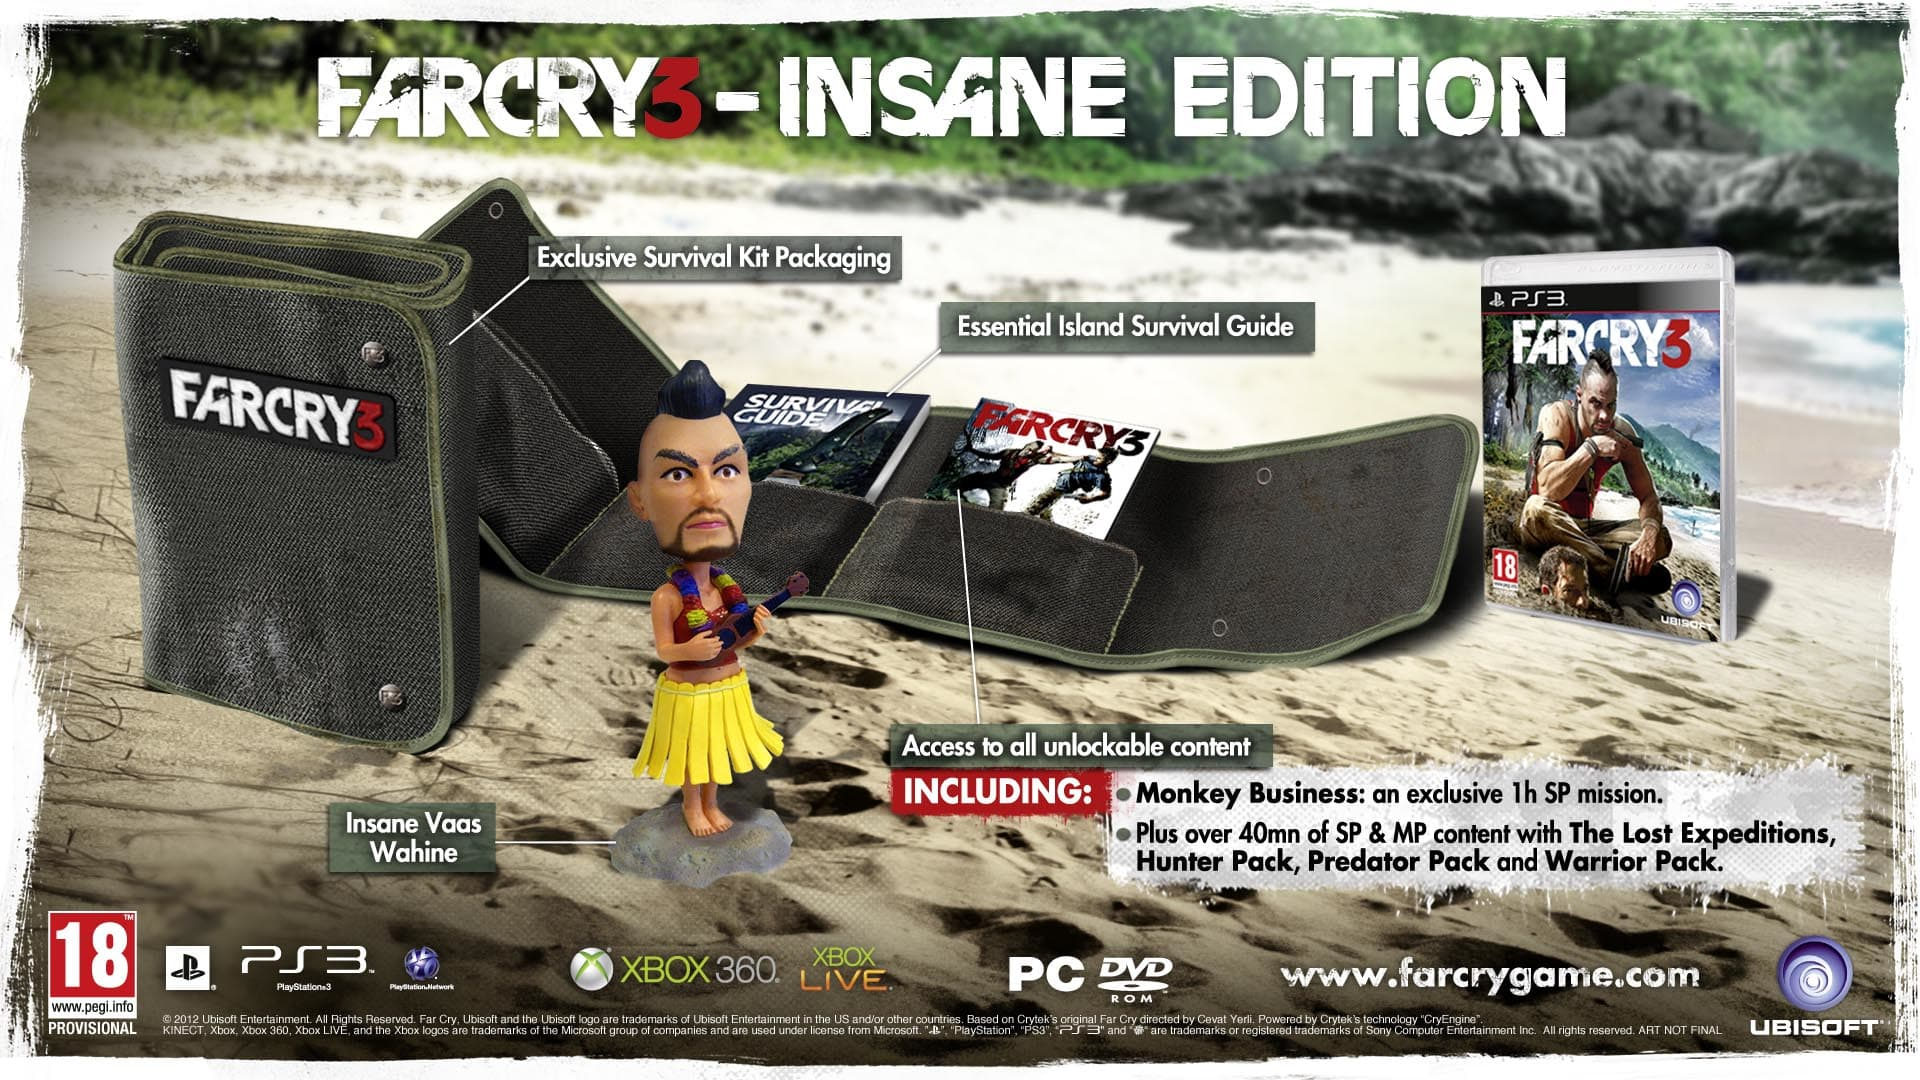 Far Cry 3 Insane Edition on PlayStation 3 at GAME